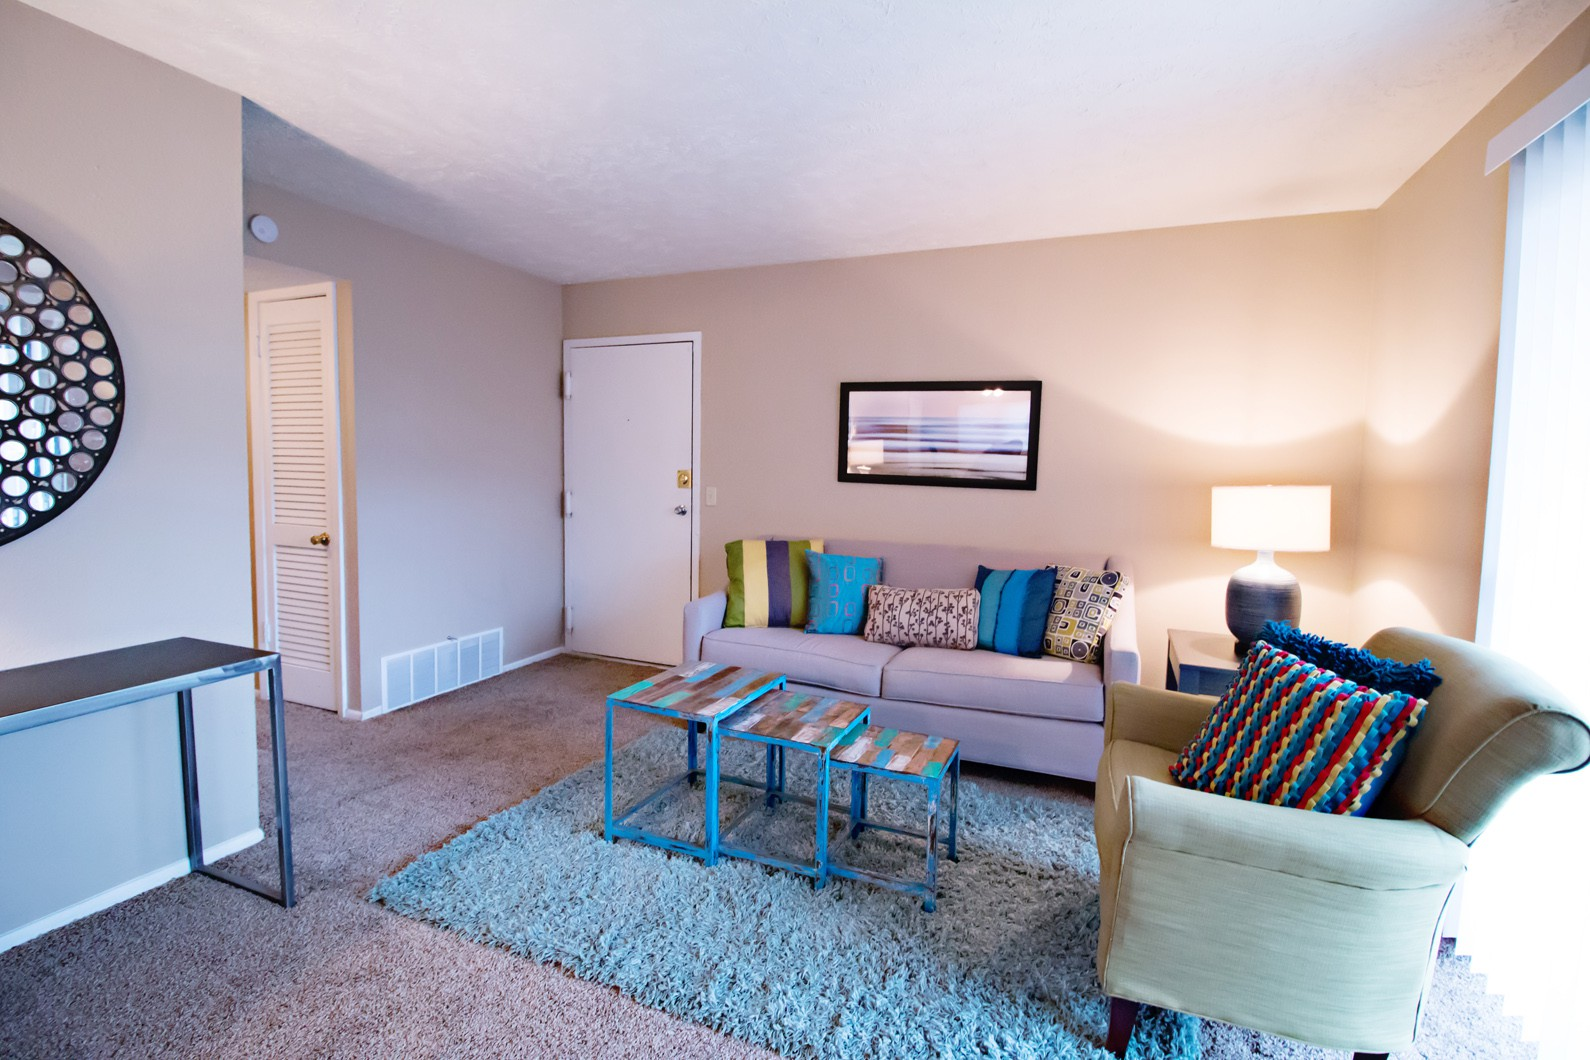 Apartments Near Bellevue Britain Towne for Bellevue University Students in Bellevue, NE